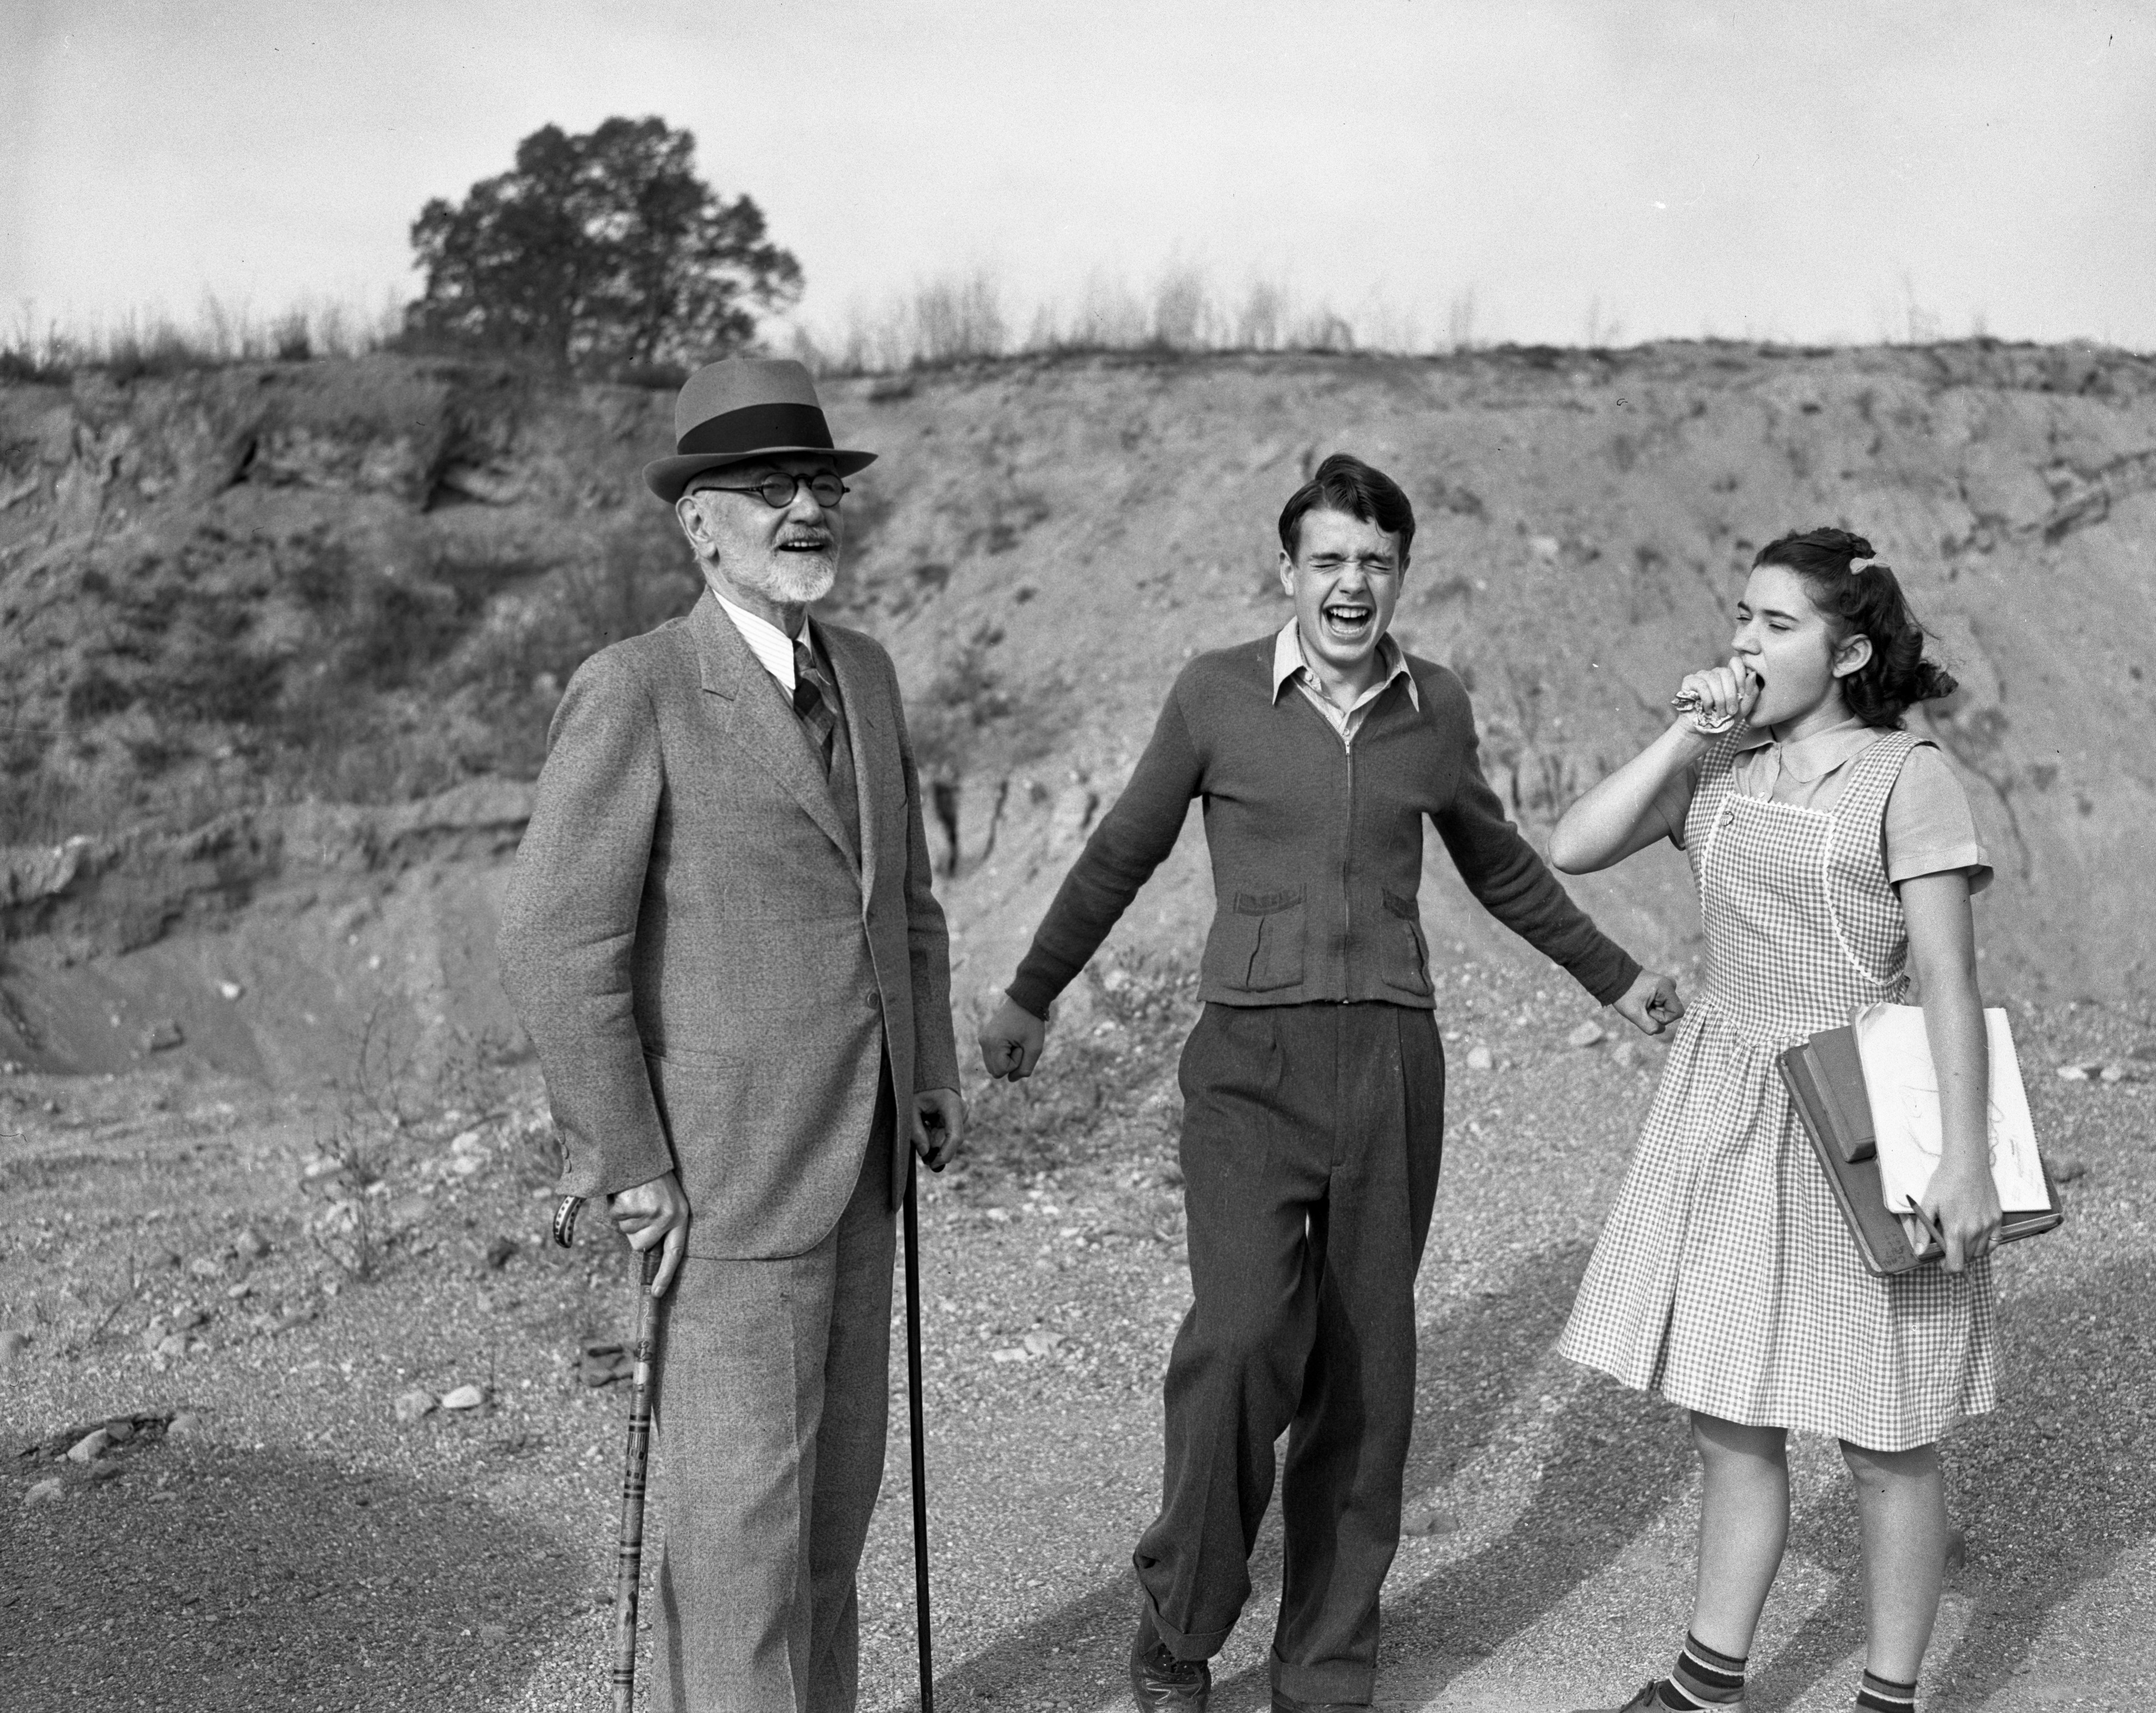 Bobby and the Old Professor, with Julia: Yawning, October 1940 image